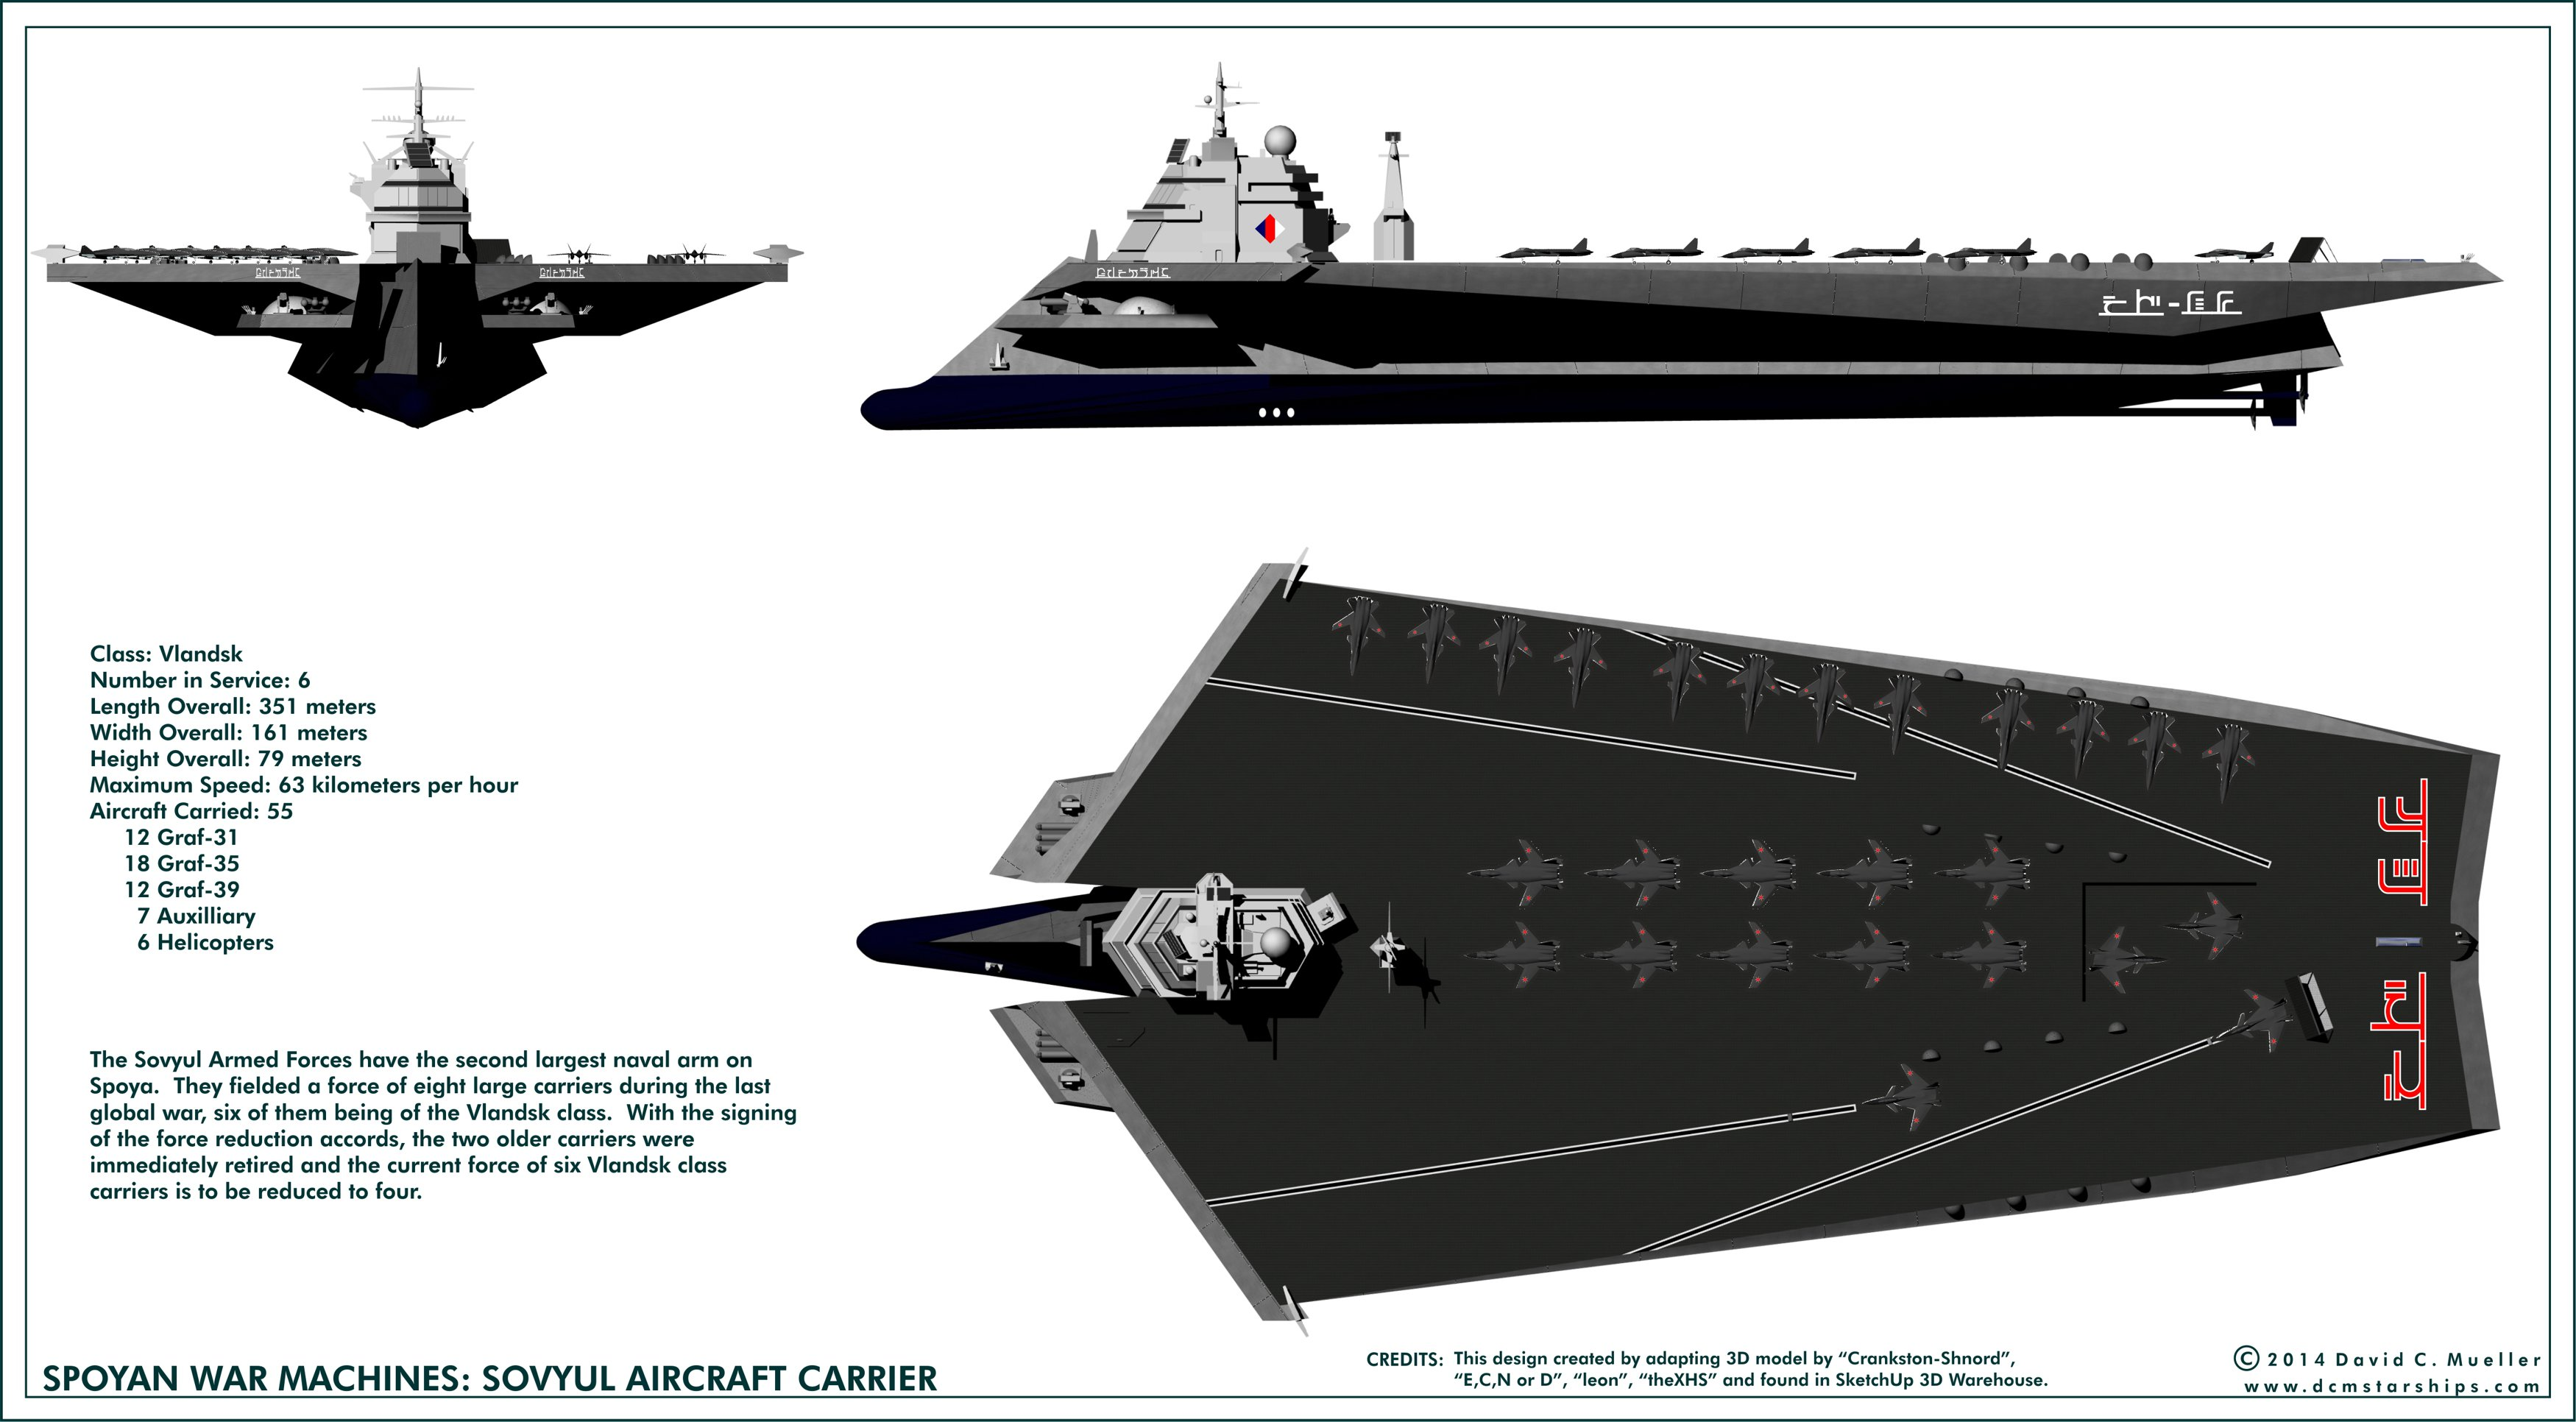 Pin Trimaran Aircraft Carrier on Pinterest